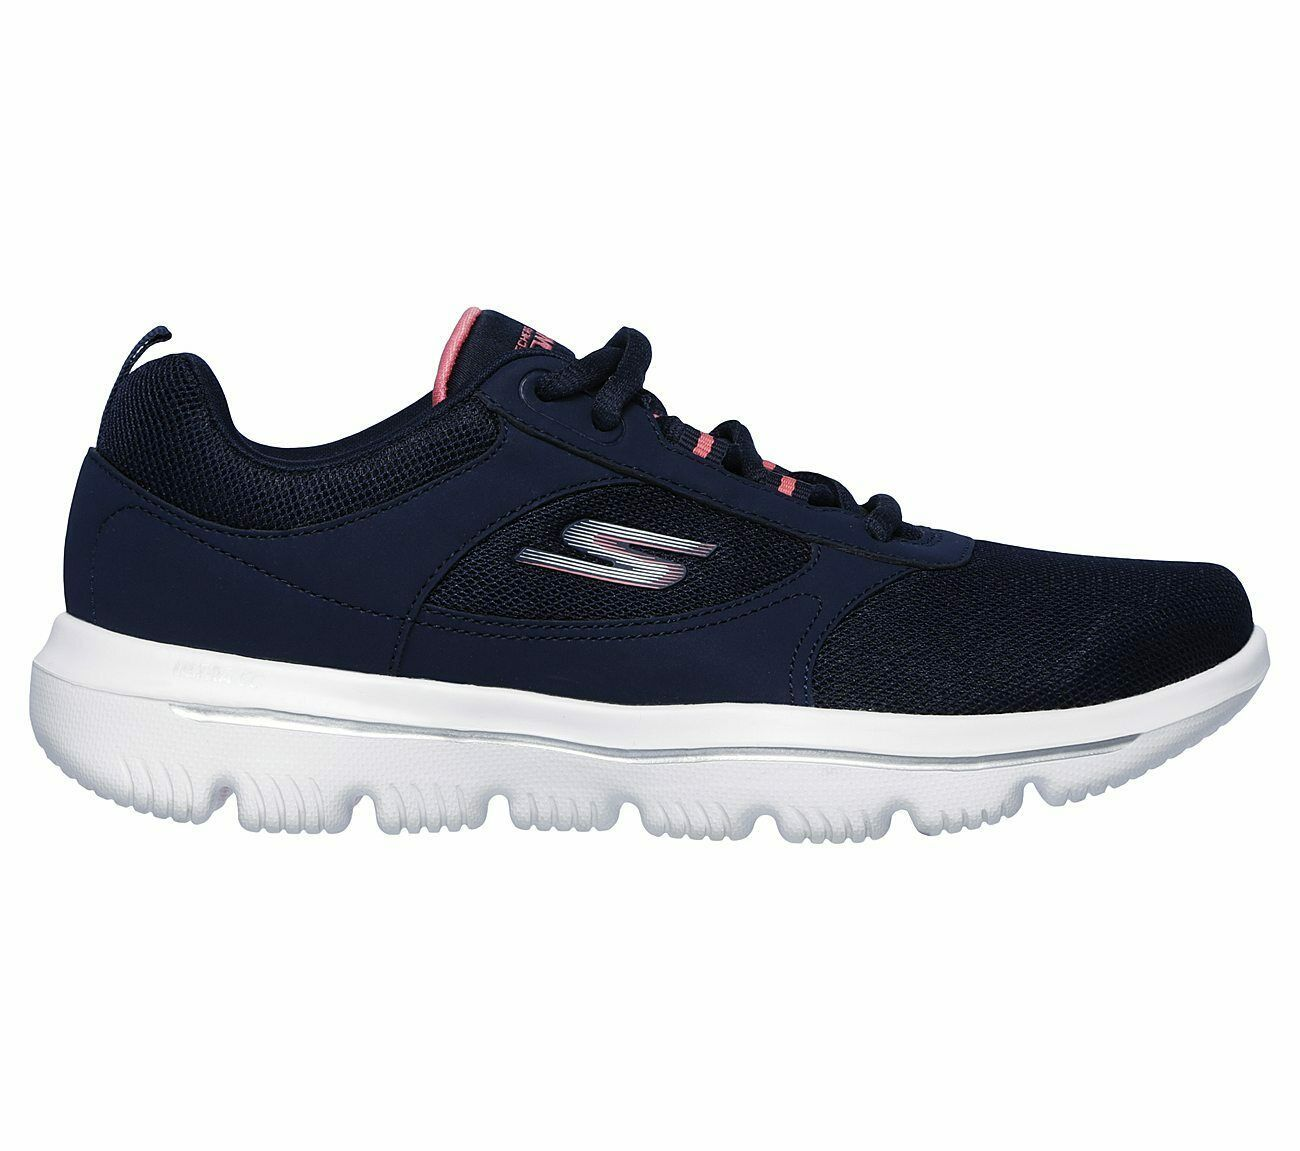 Skechers Navy Coral shoes Women Go Walk Comfort Mesh Casual Sporty Lace Up 15734 image 2